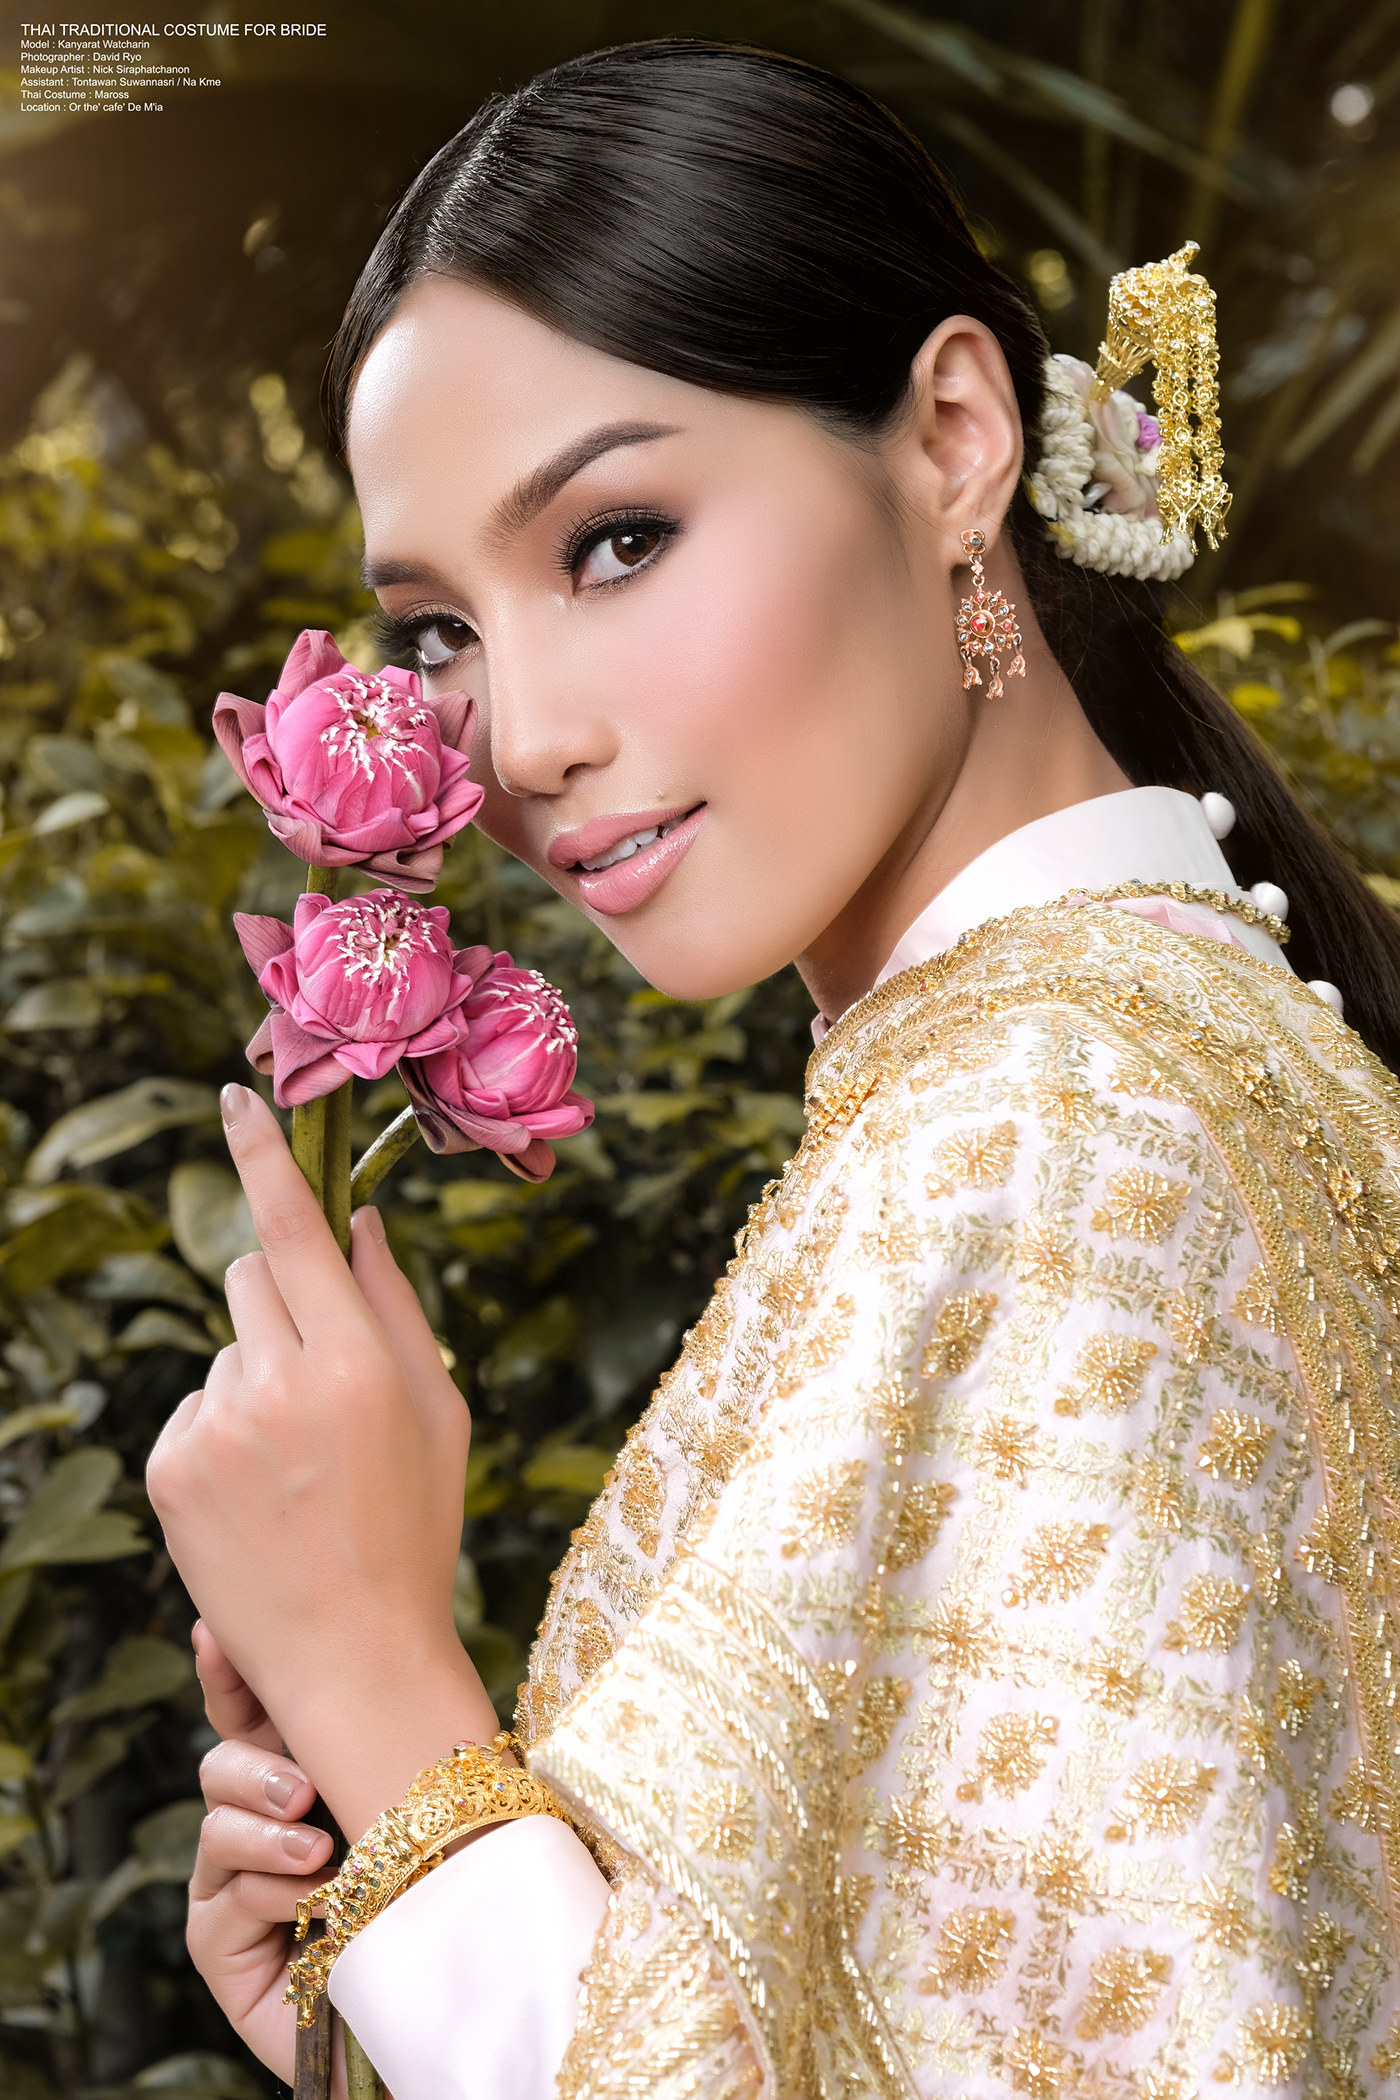 THAI TRADITIONAL COSTUME FOR BRIDE